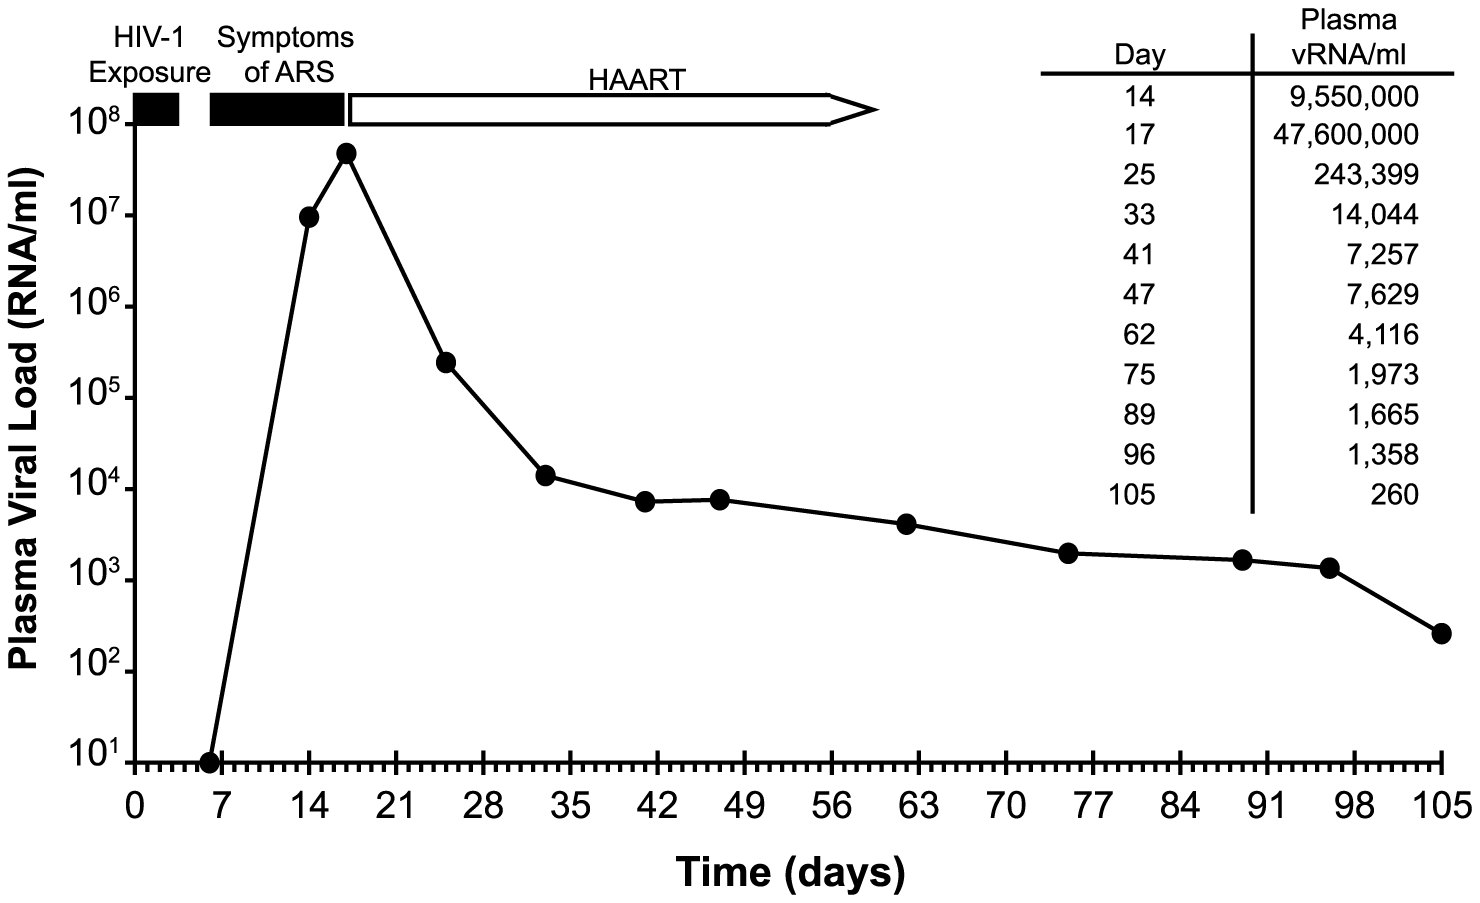 Time course of HIV-1 exposure, symptom onset, viral kinetics, and initiation of antiretroviral therapy in subject AD17.